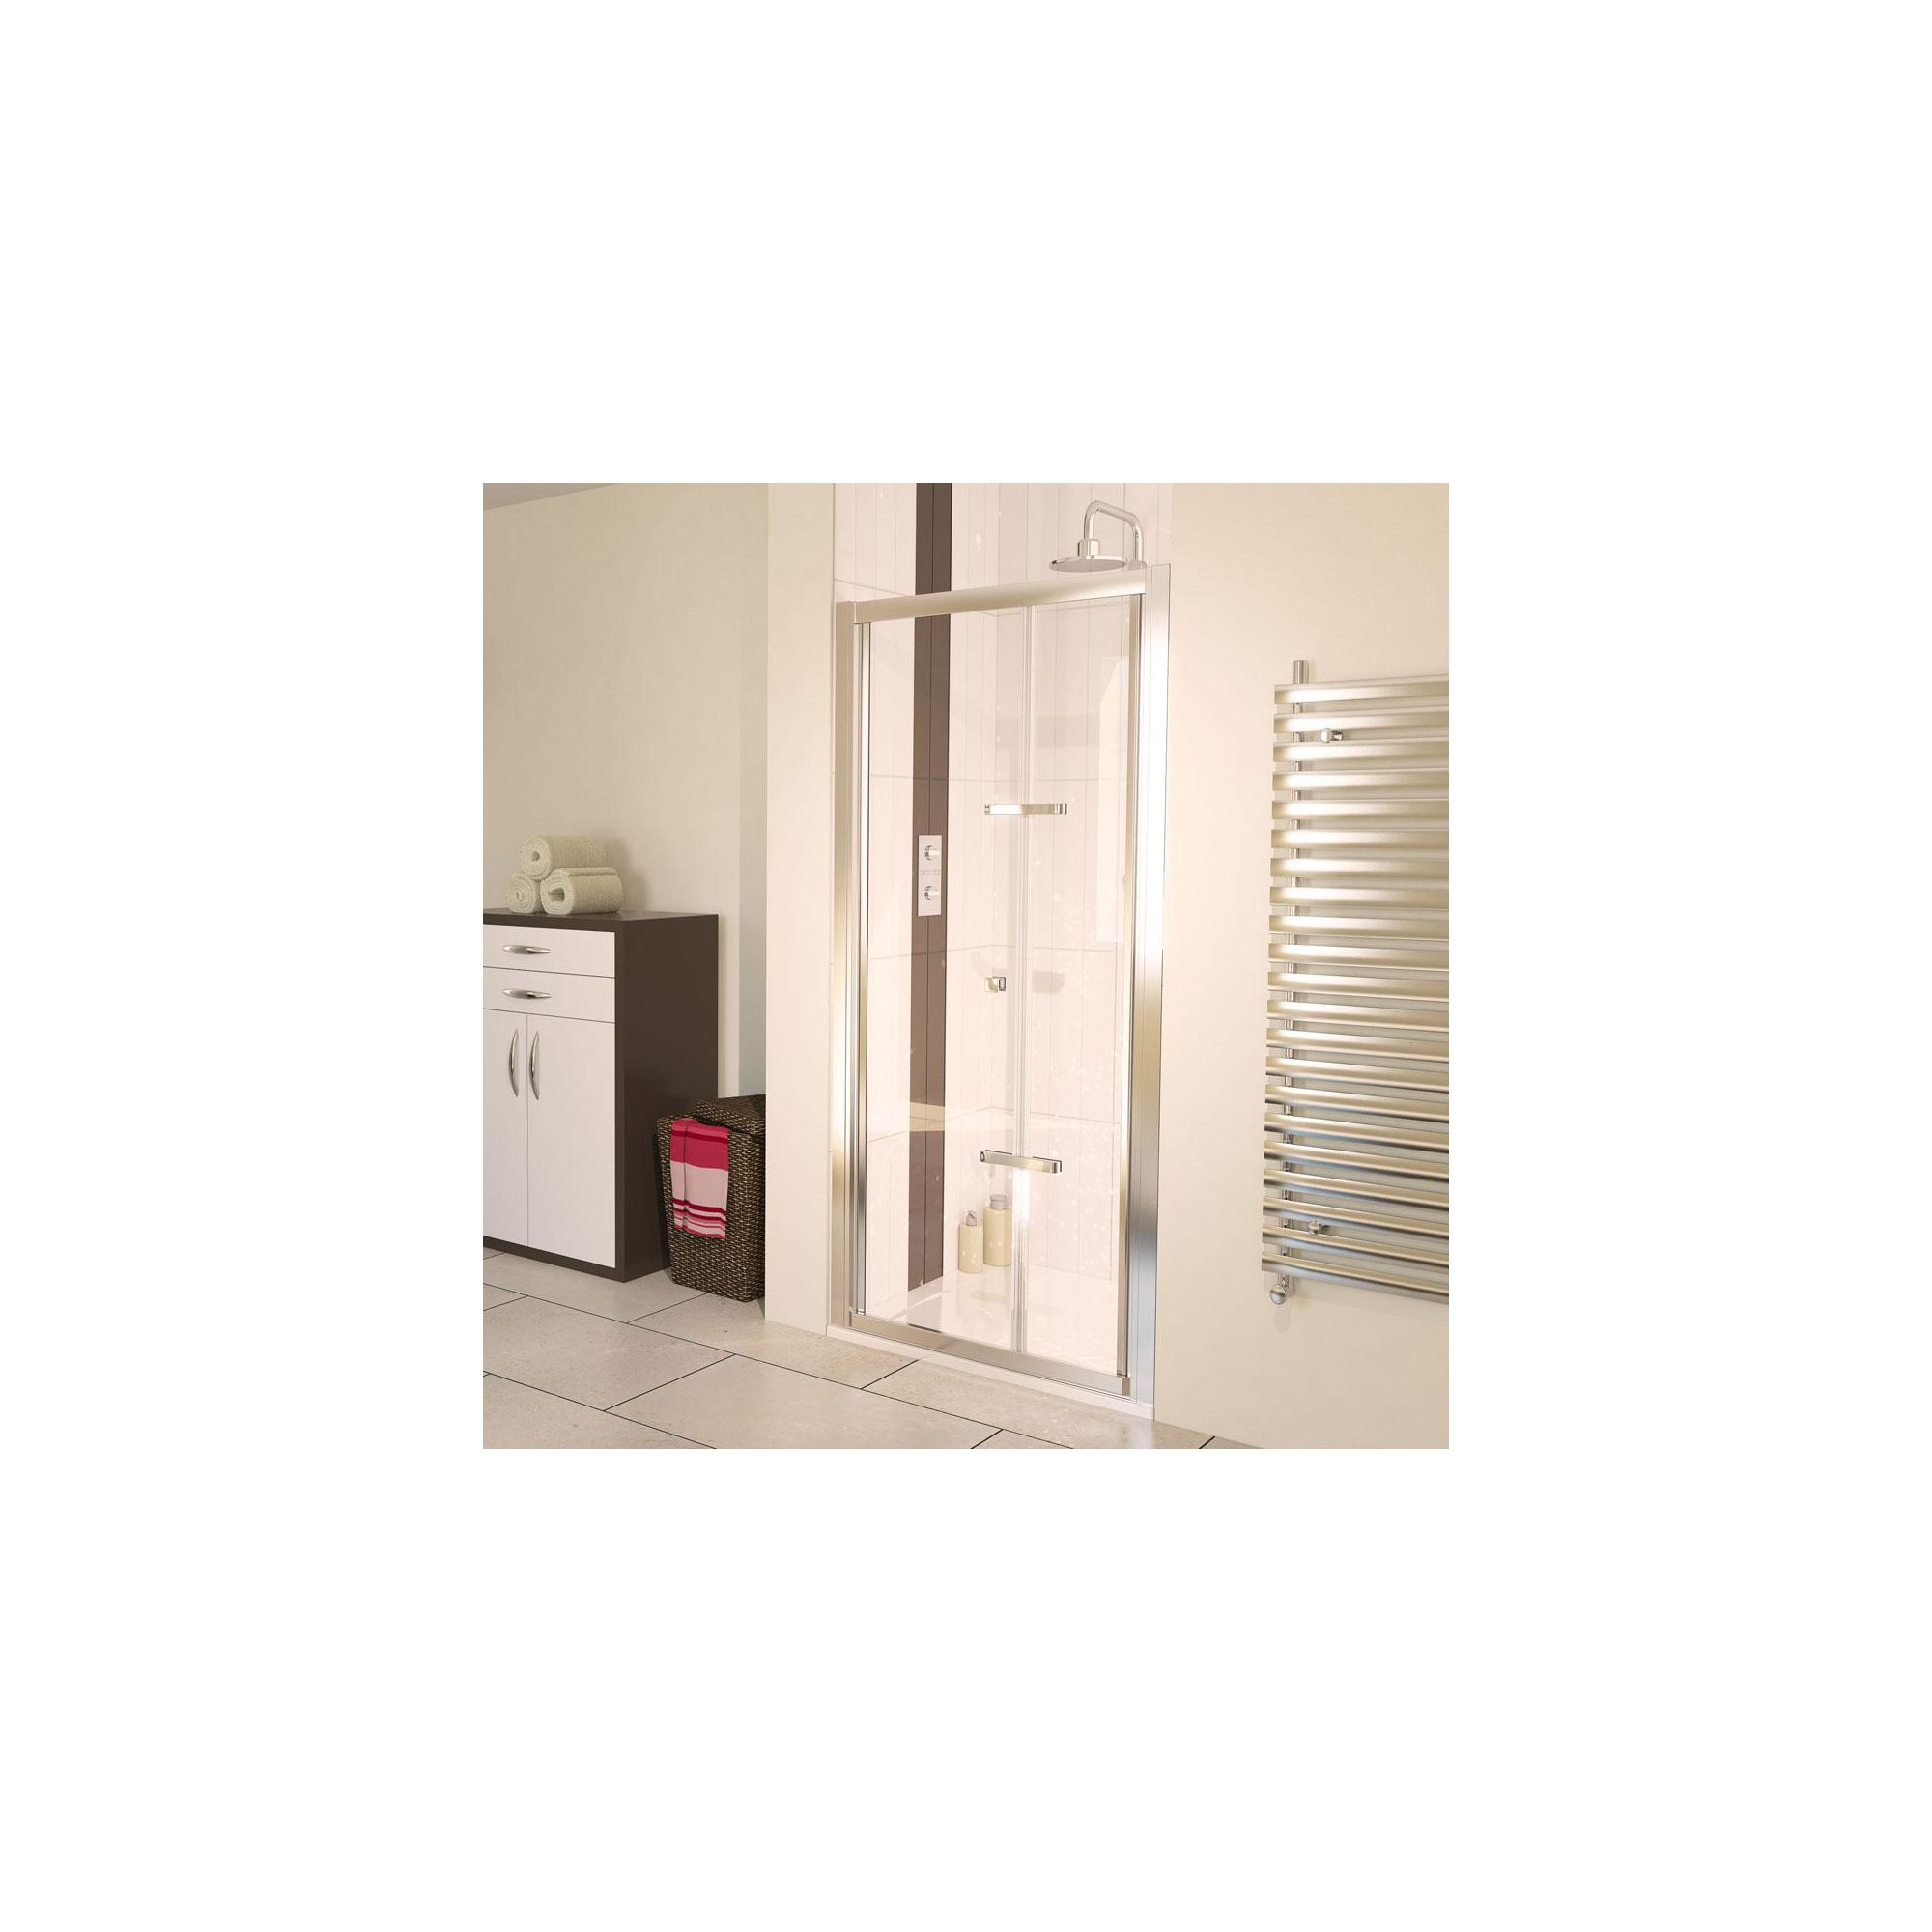 Aqualux AQUA6 Bi-Fold Shower Door, 900mm Wide, Polished Silver Frame, 6mm Glass at Tesco Direct